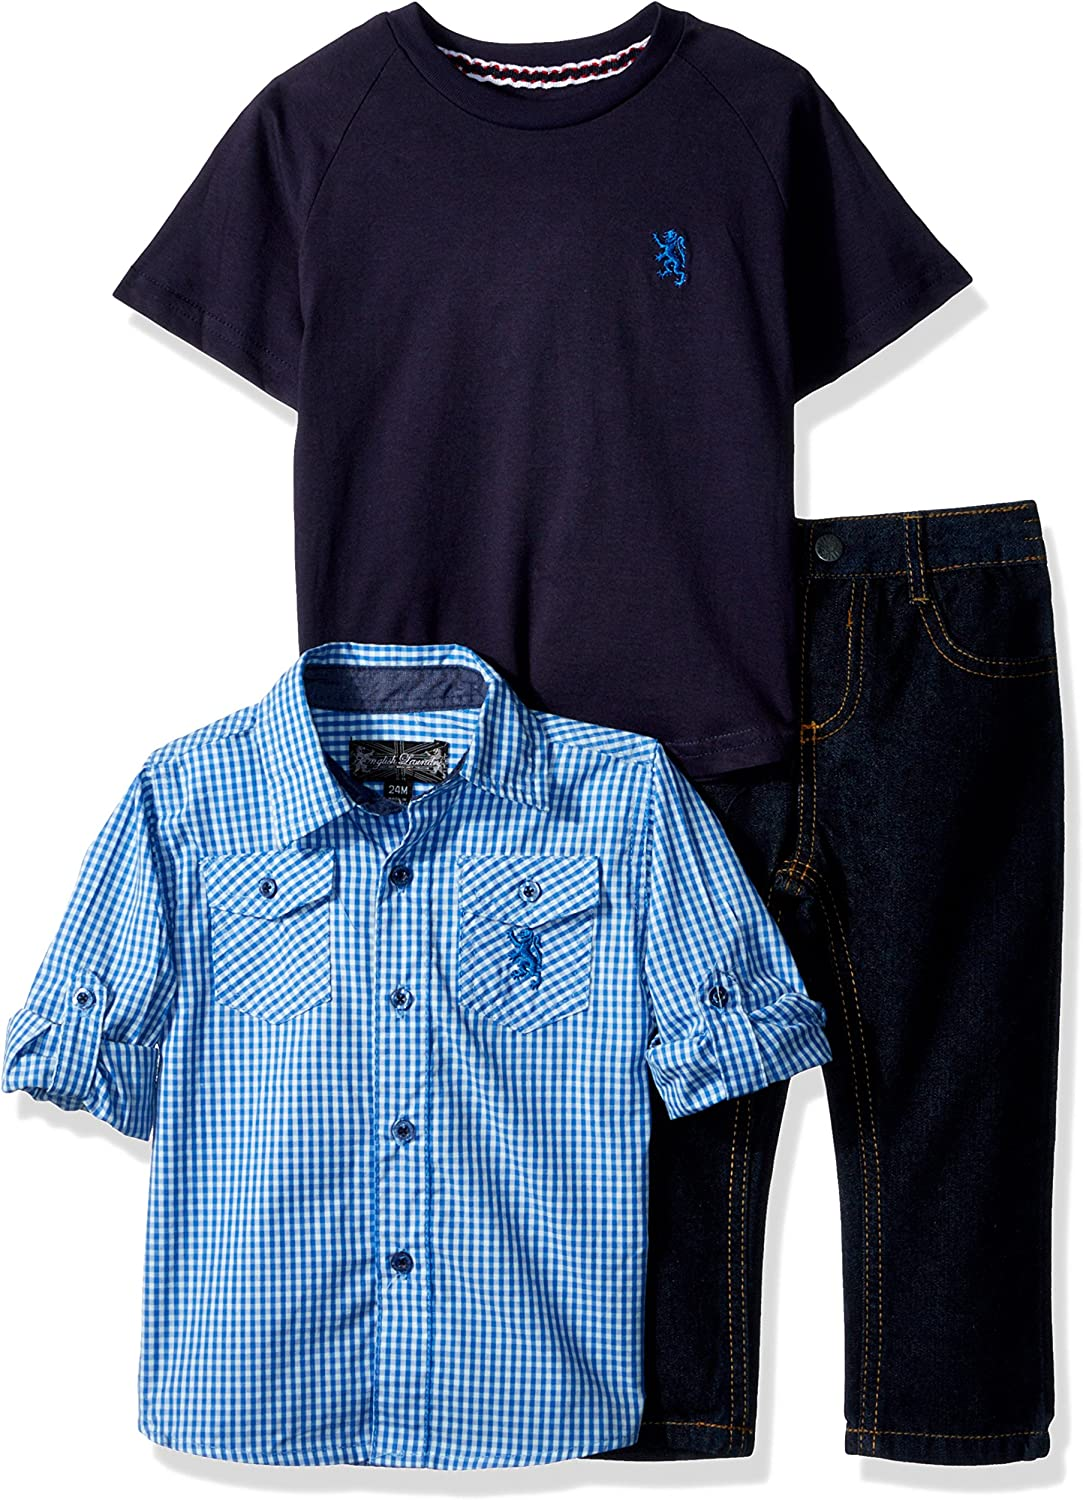 English Laundry Baby Boys Long Sleeve, T-Shirt and Pant Set (More Styles)